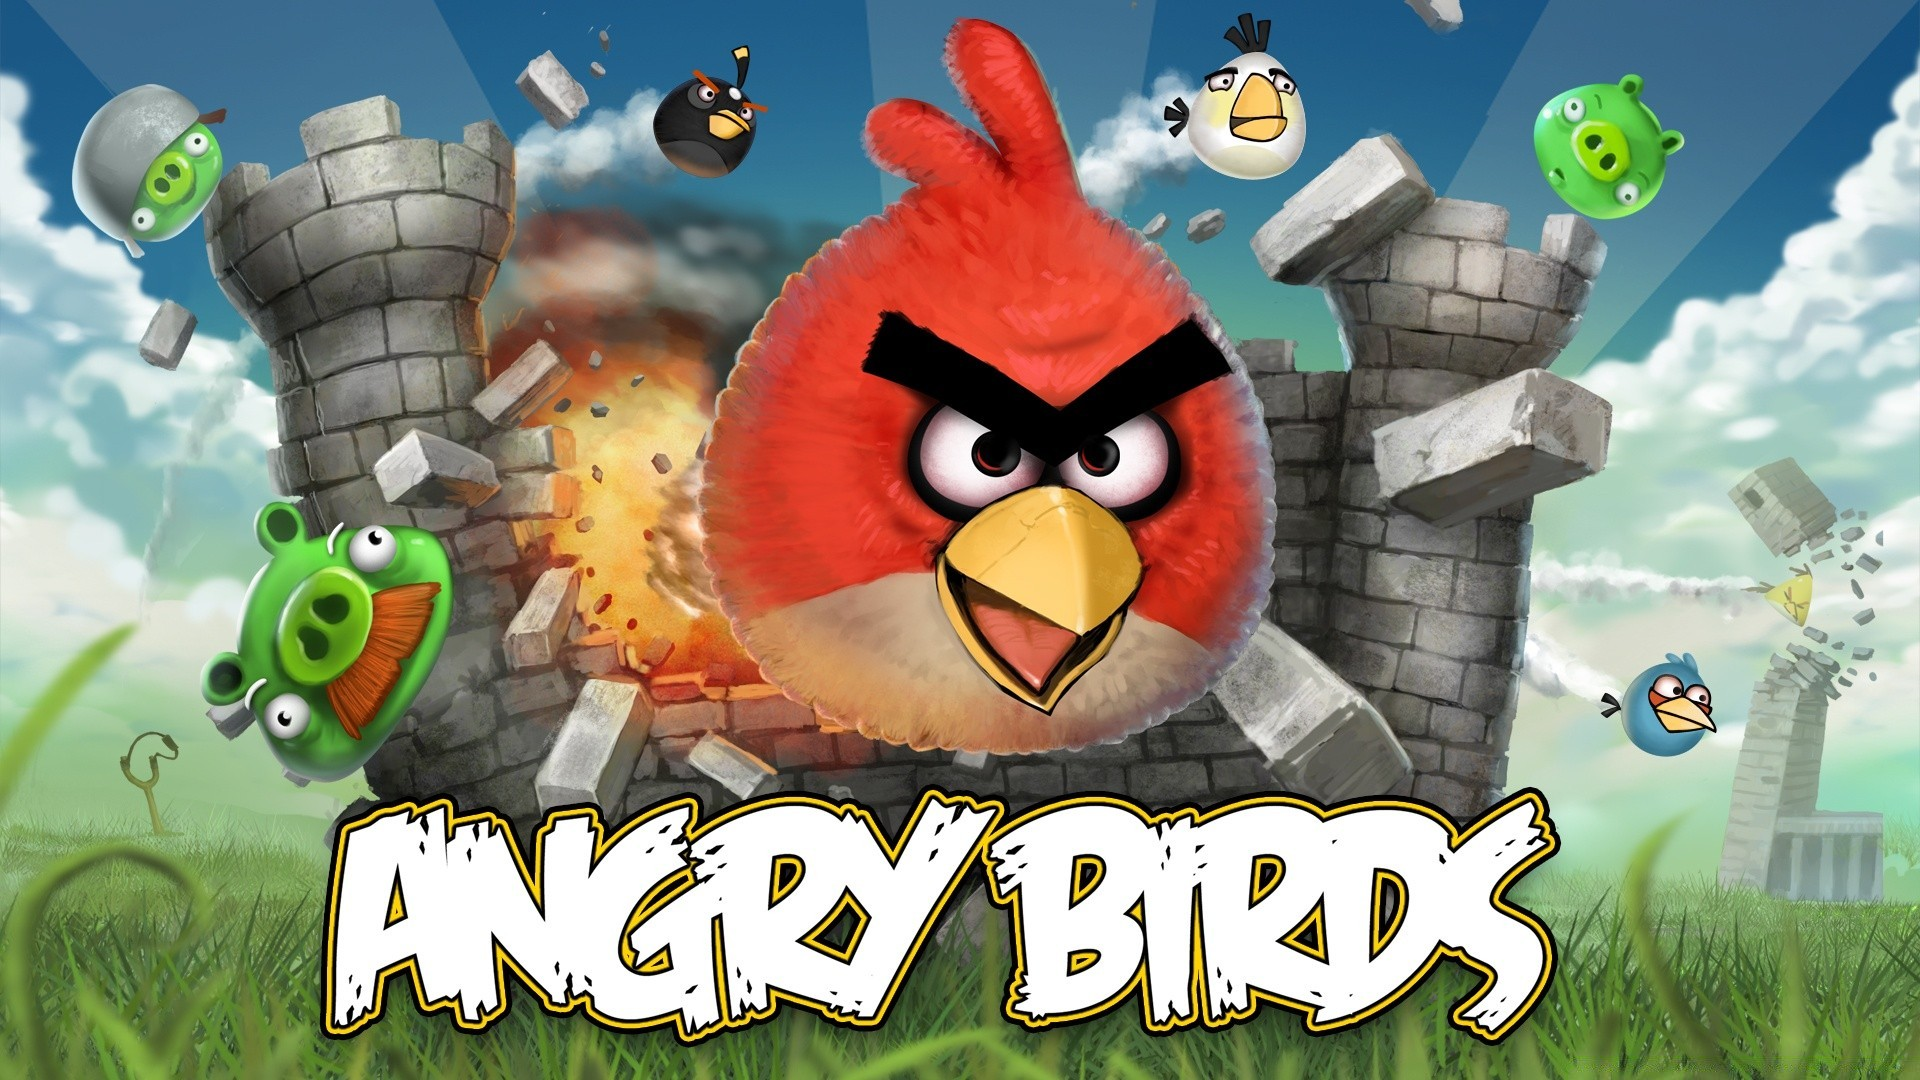 Angry Birds Game - Free wallpapers